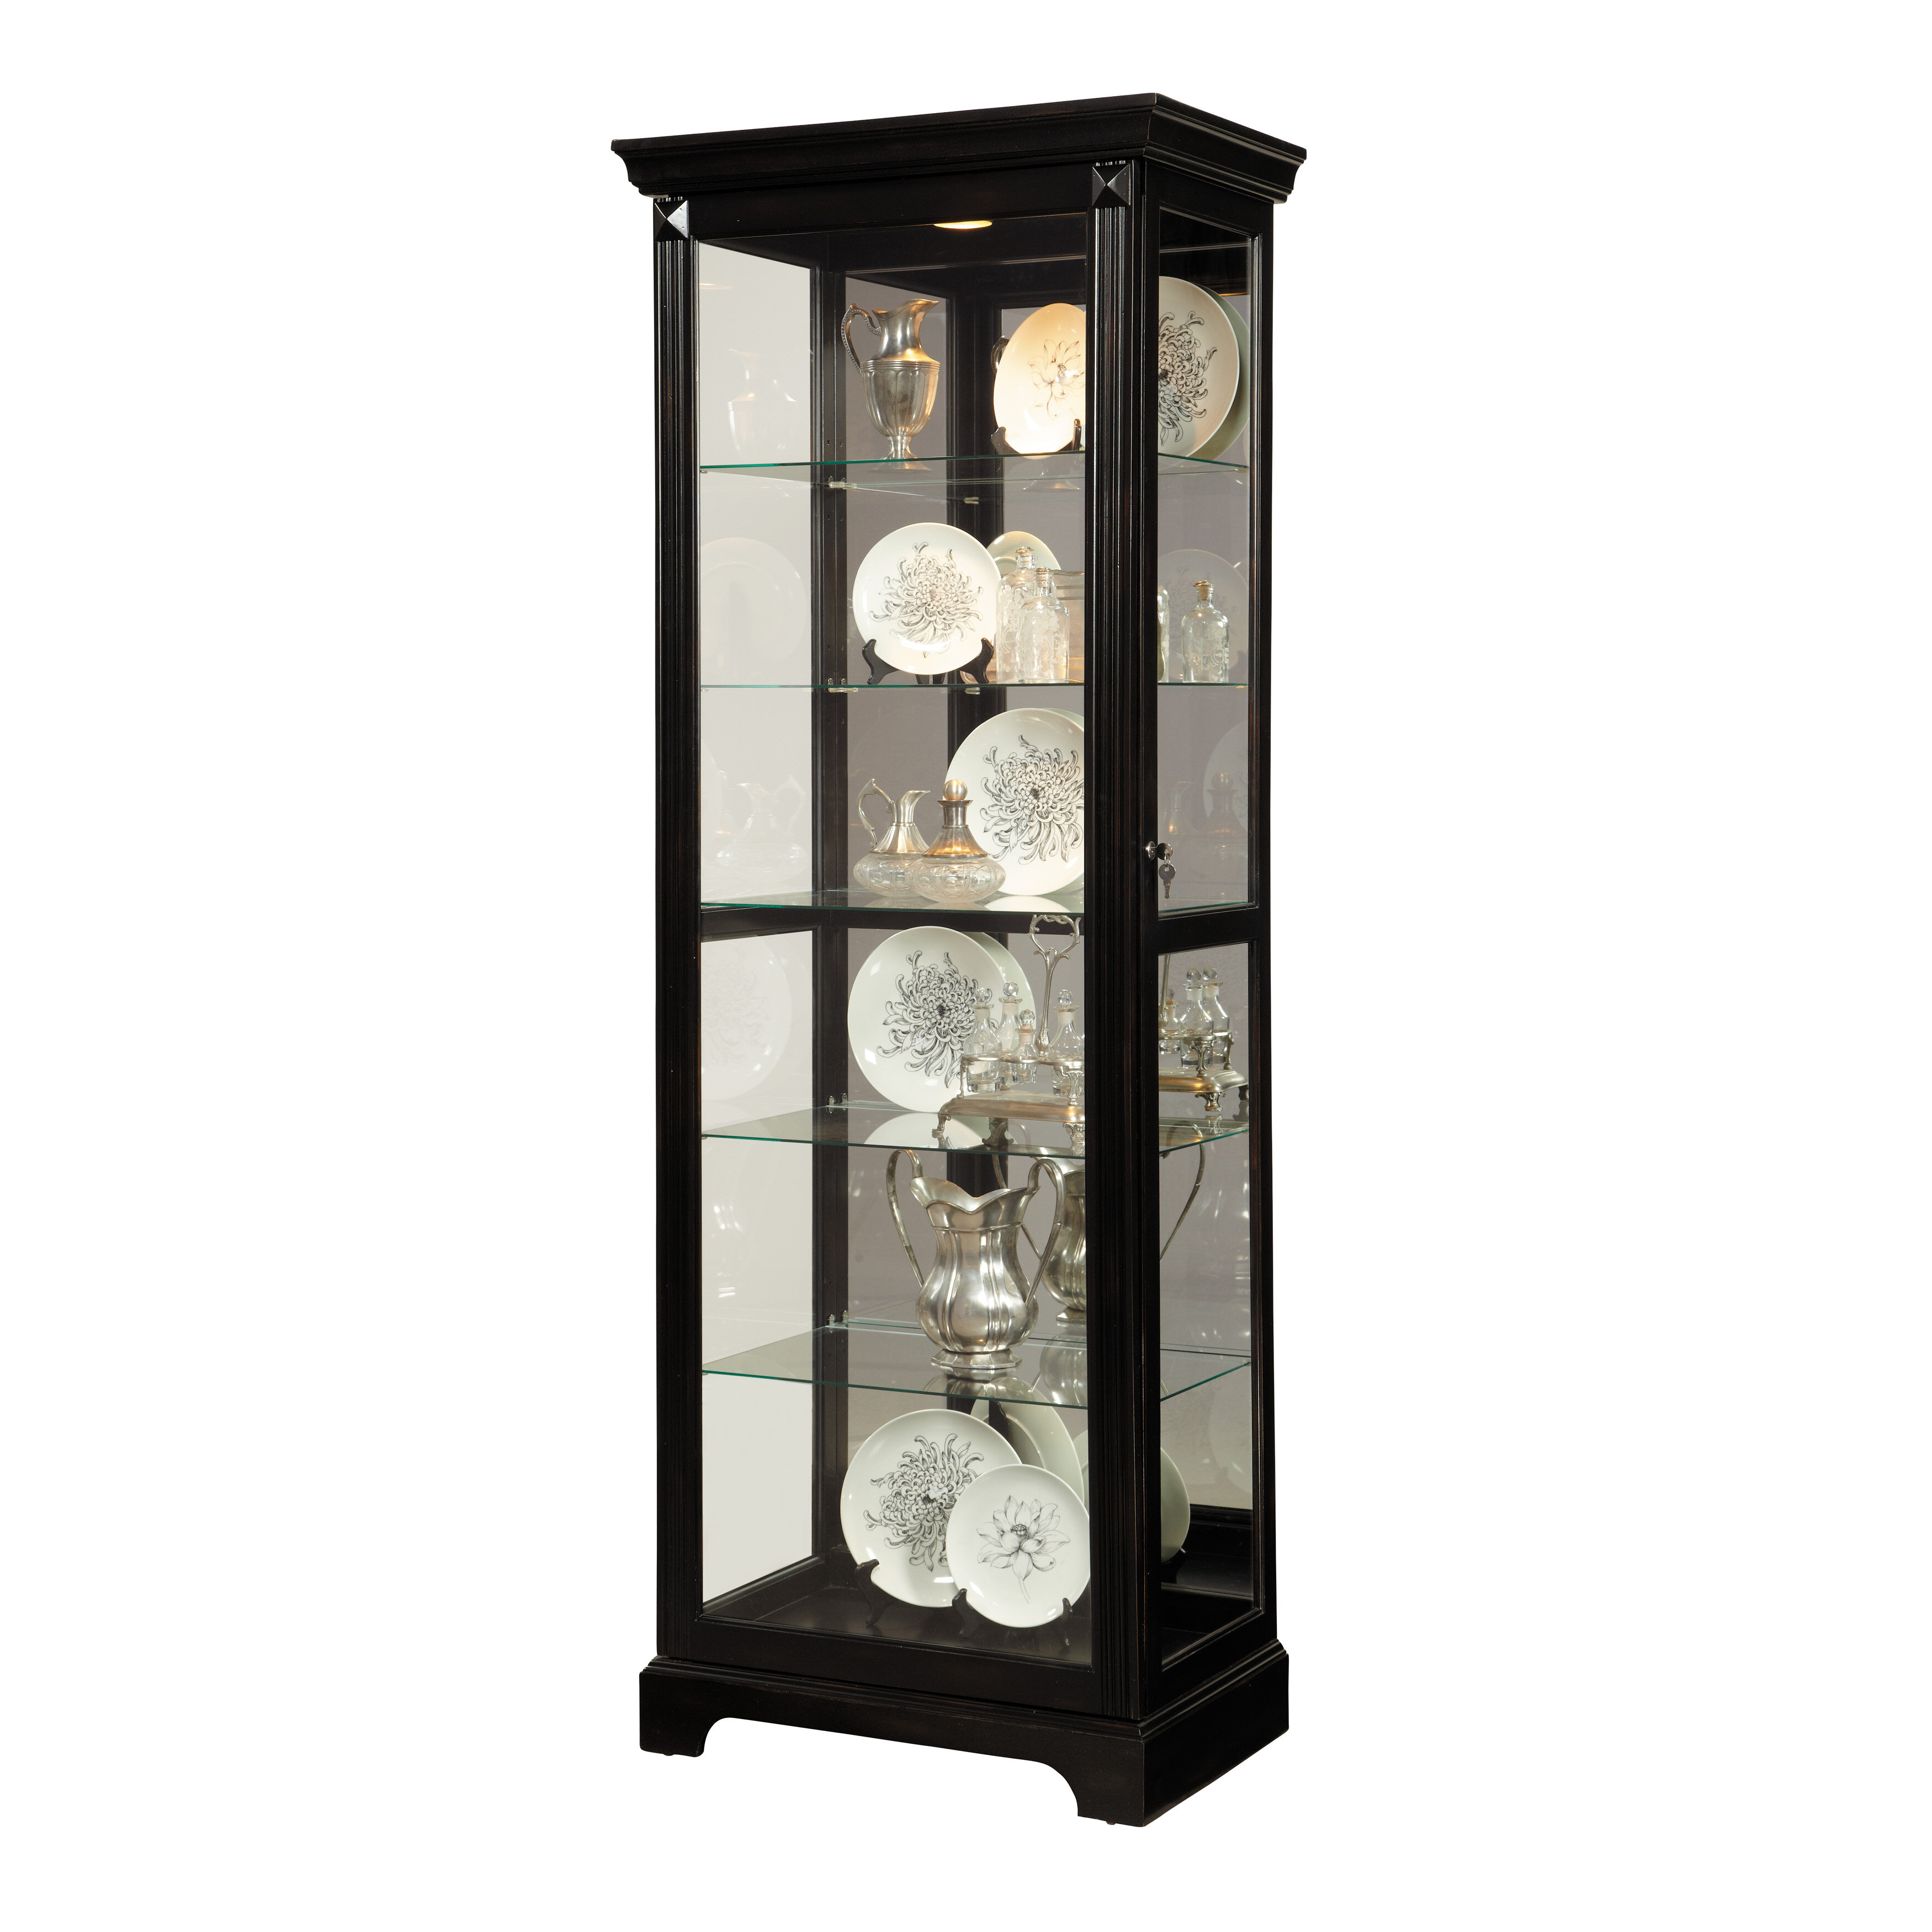 corner cabinet inlaid lighted glass light saveenlarge mahogany galery cabinetwooden compare with curio nagpurentrepreneurs